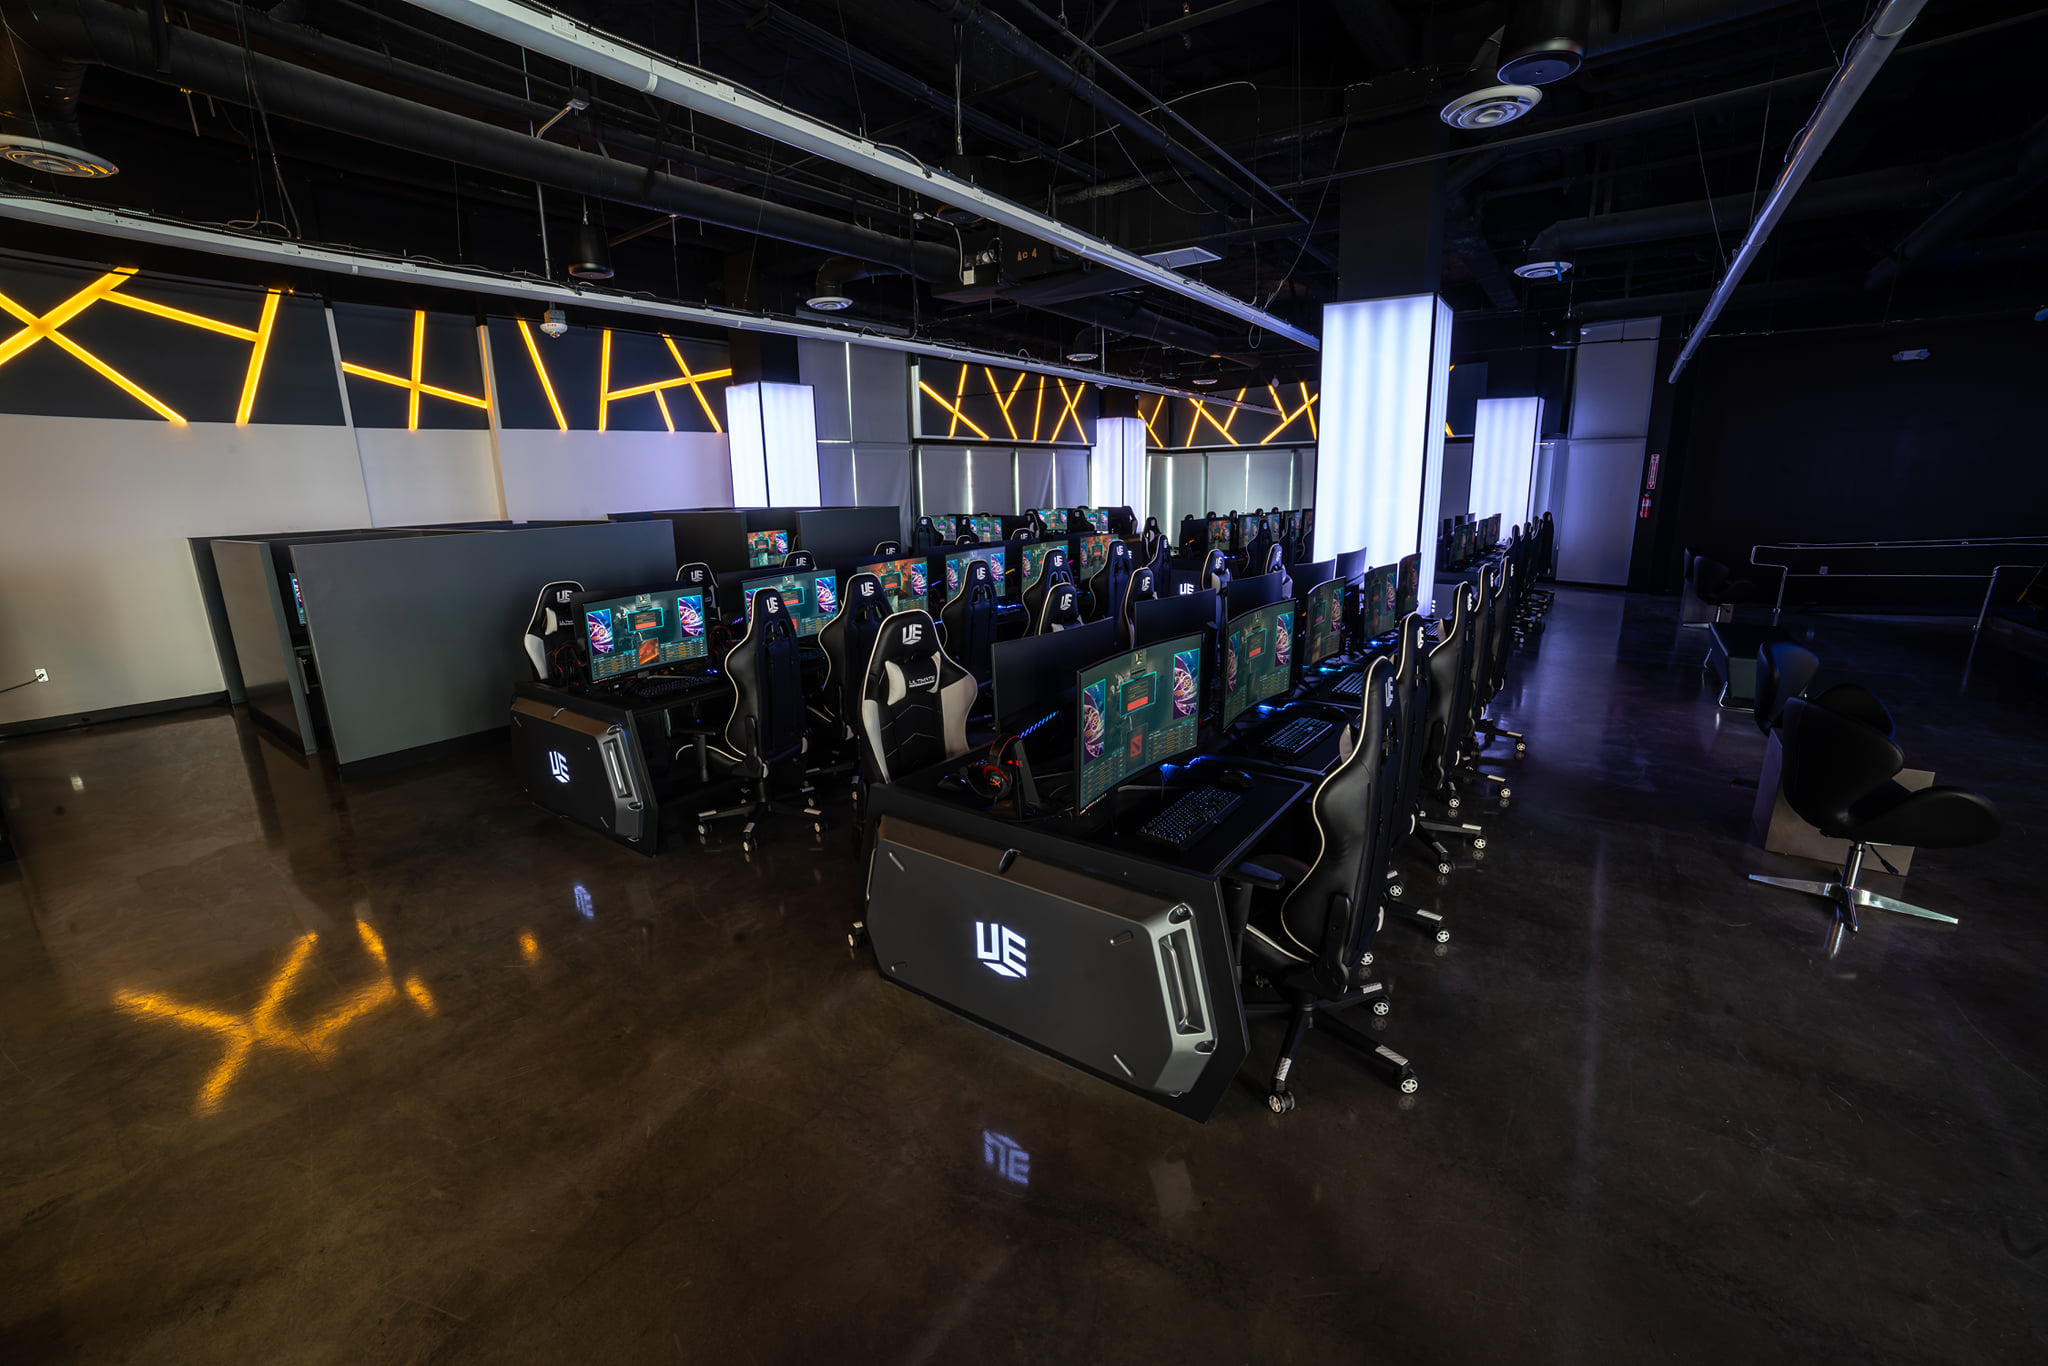 This esports venue is a great place for casual and professional players